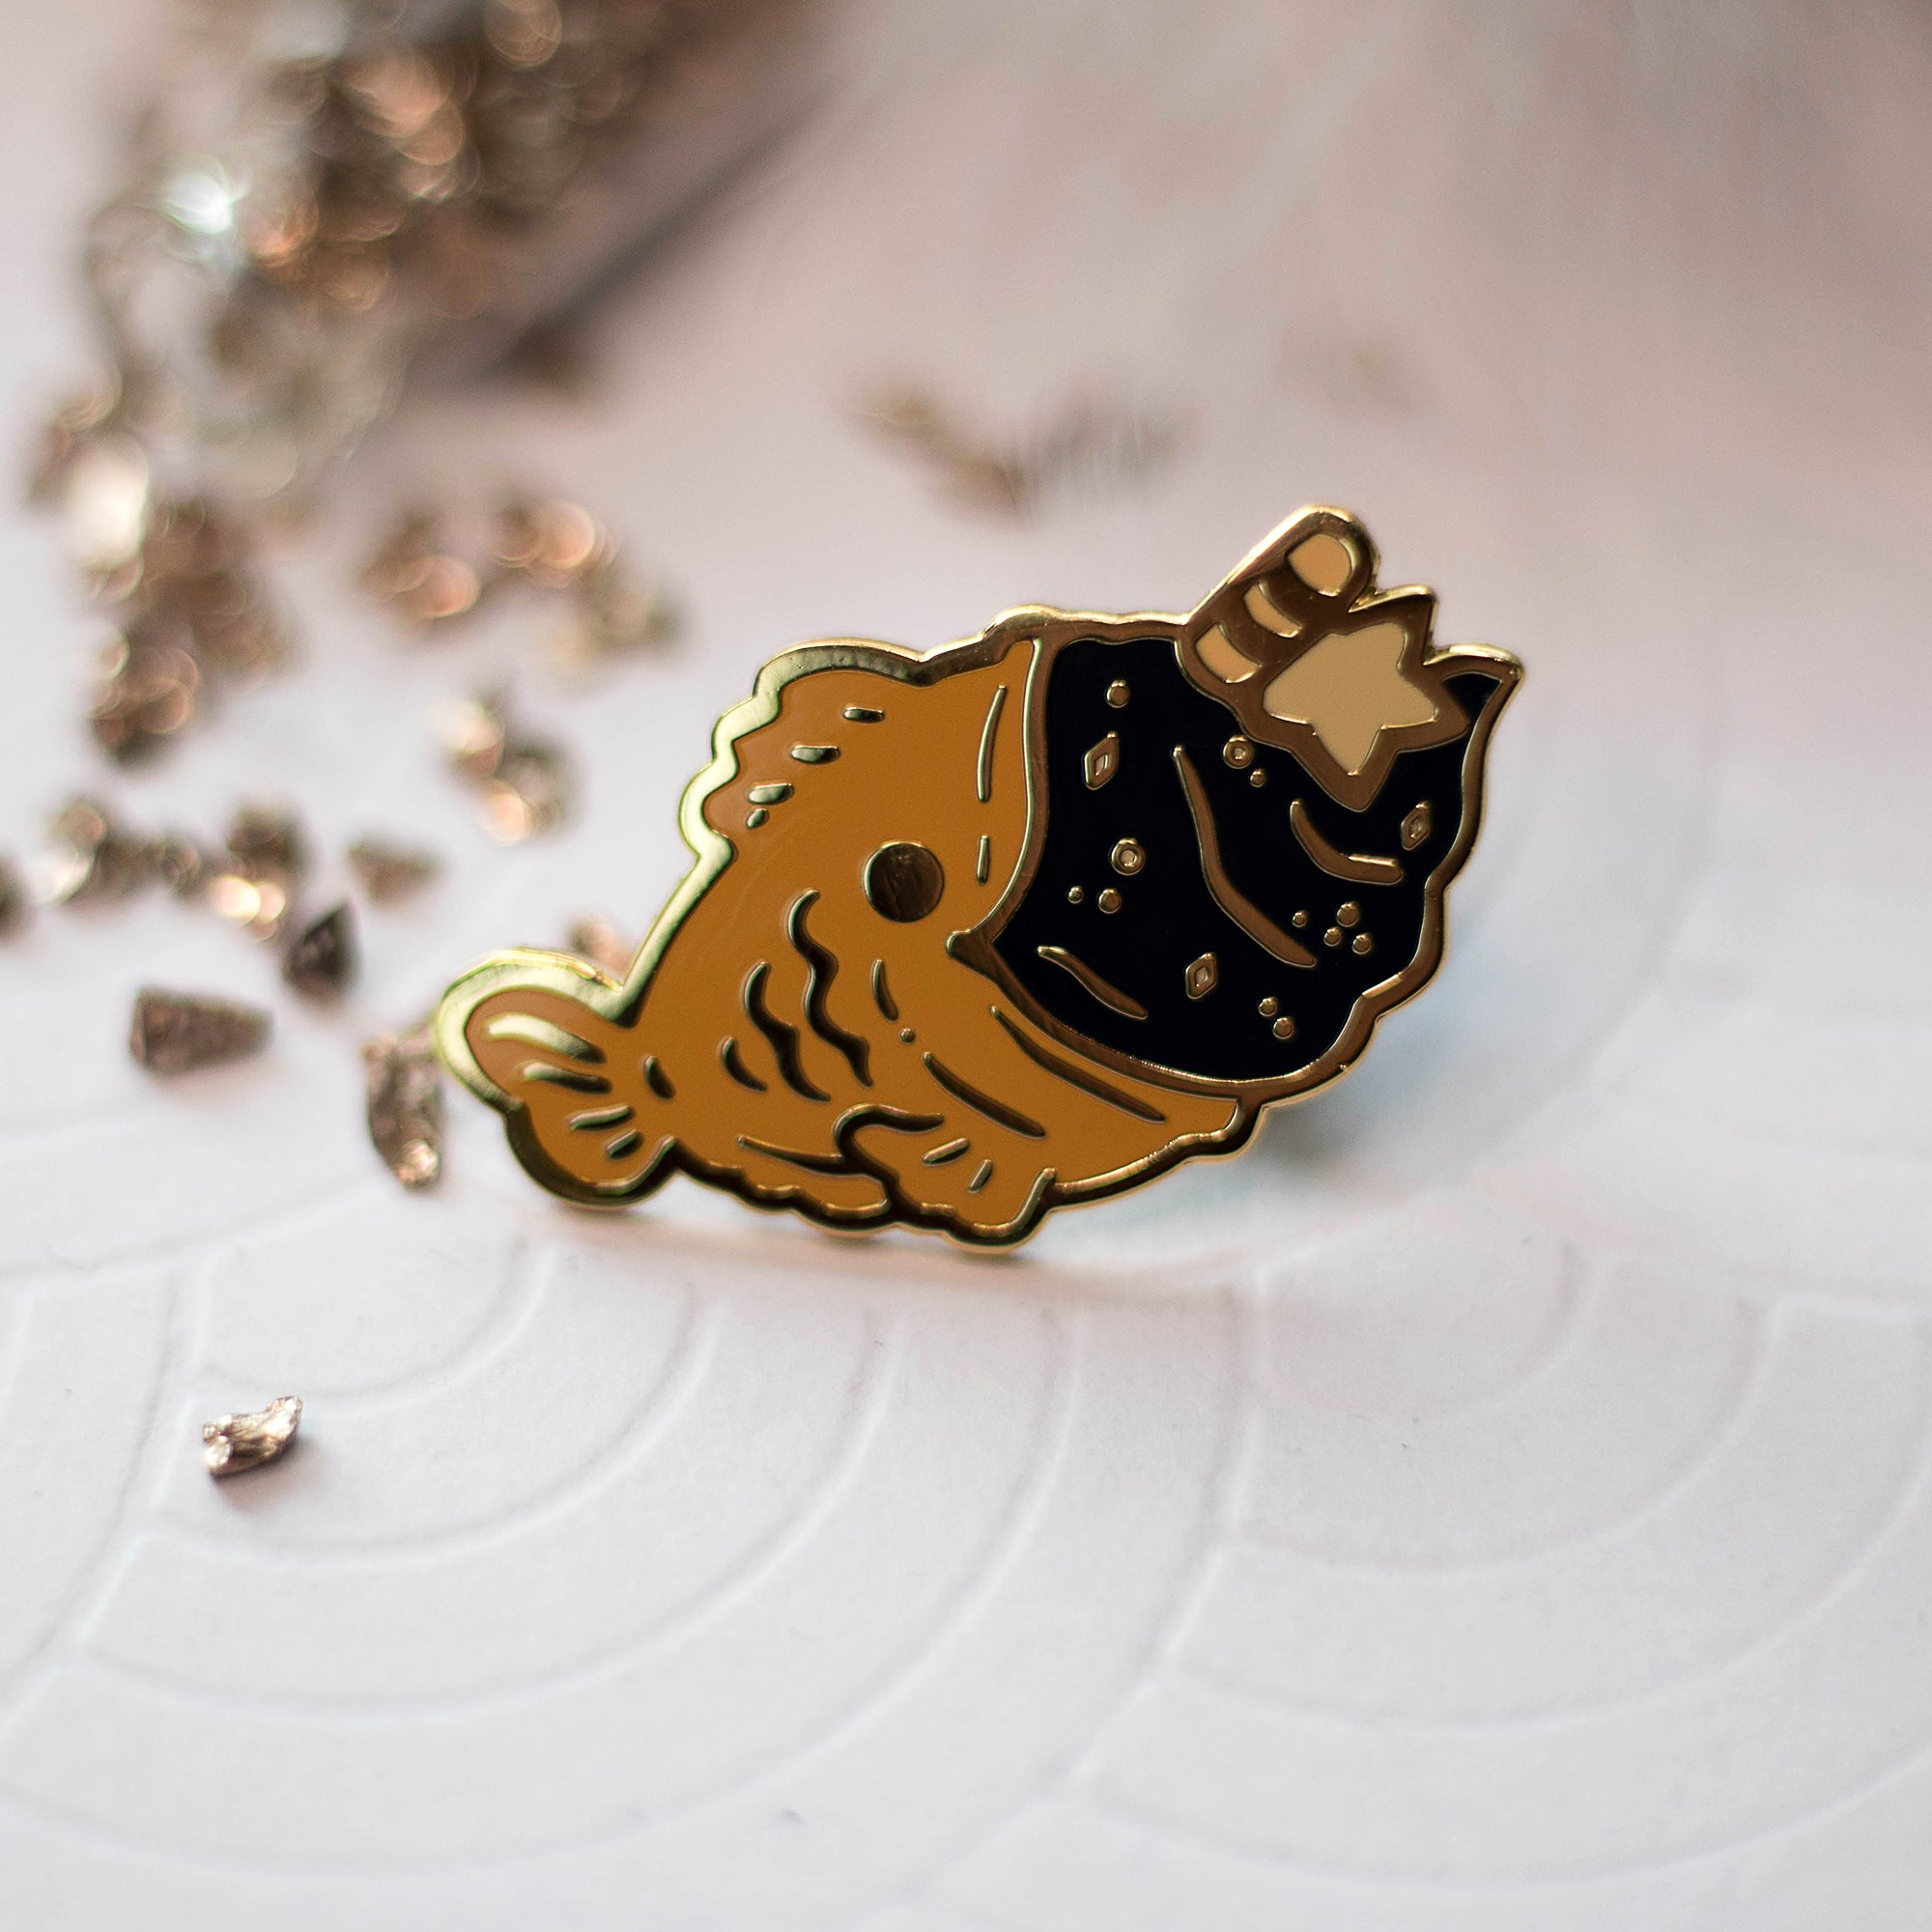 Starry Taiyaki | Enamel Pin - Aurigae Art &Illustration